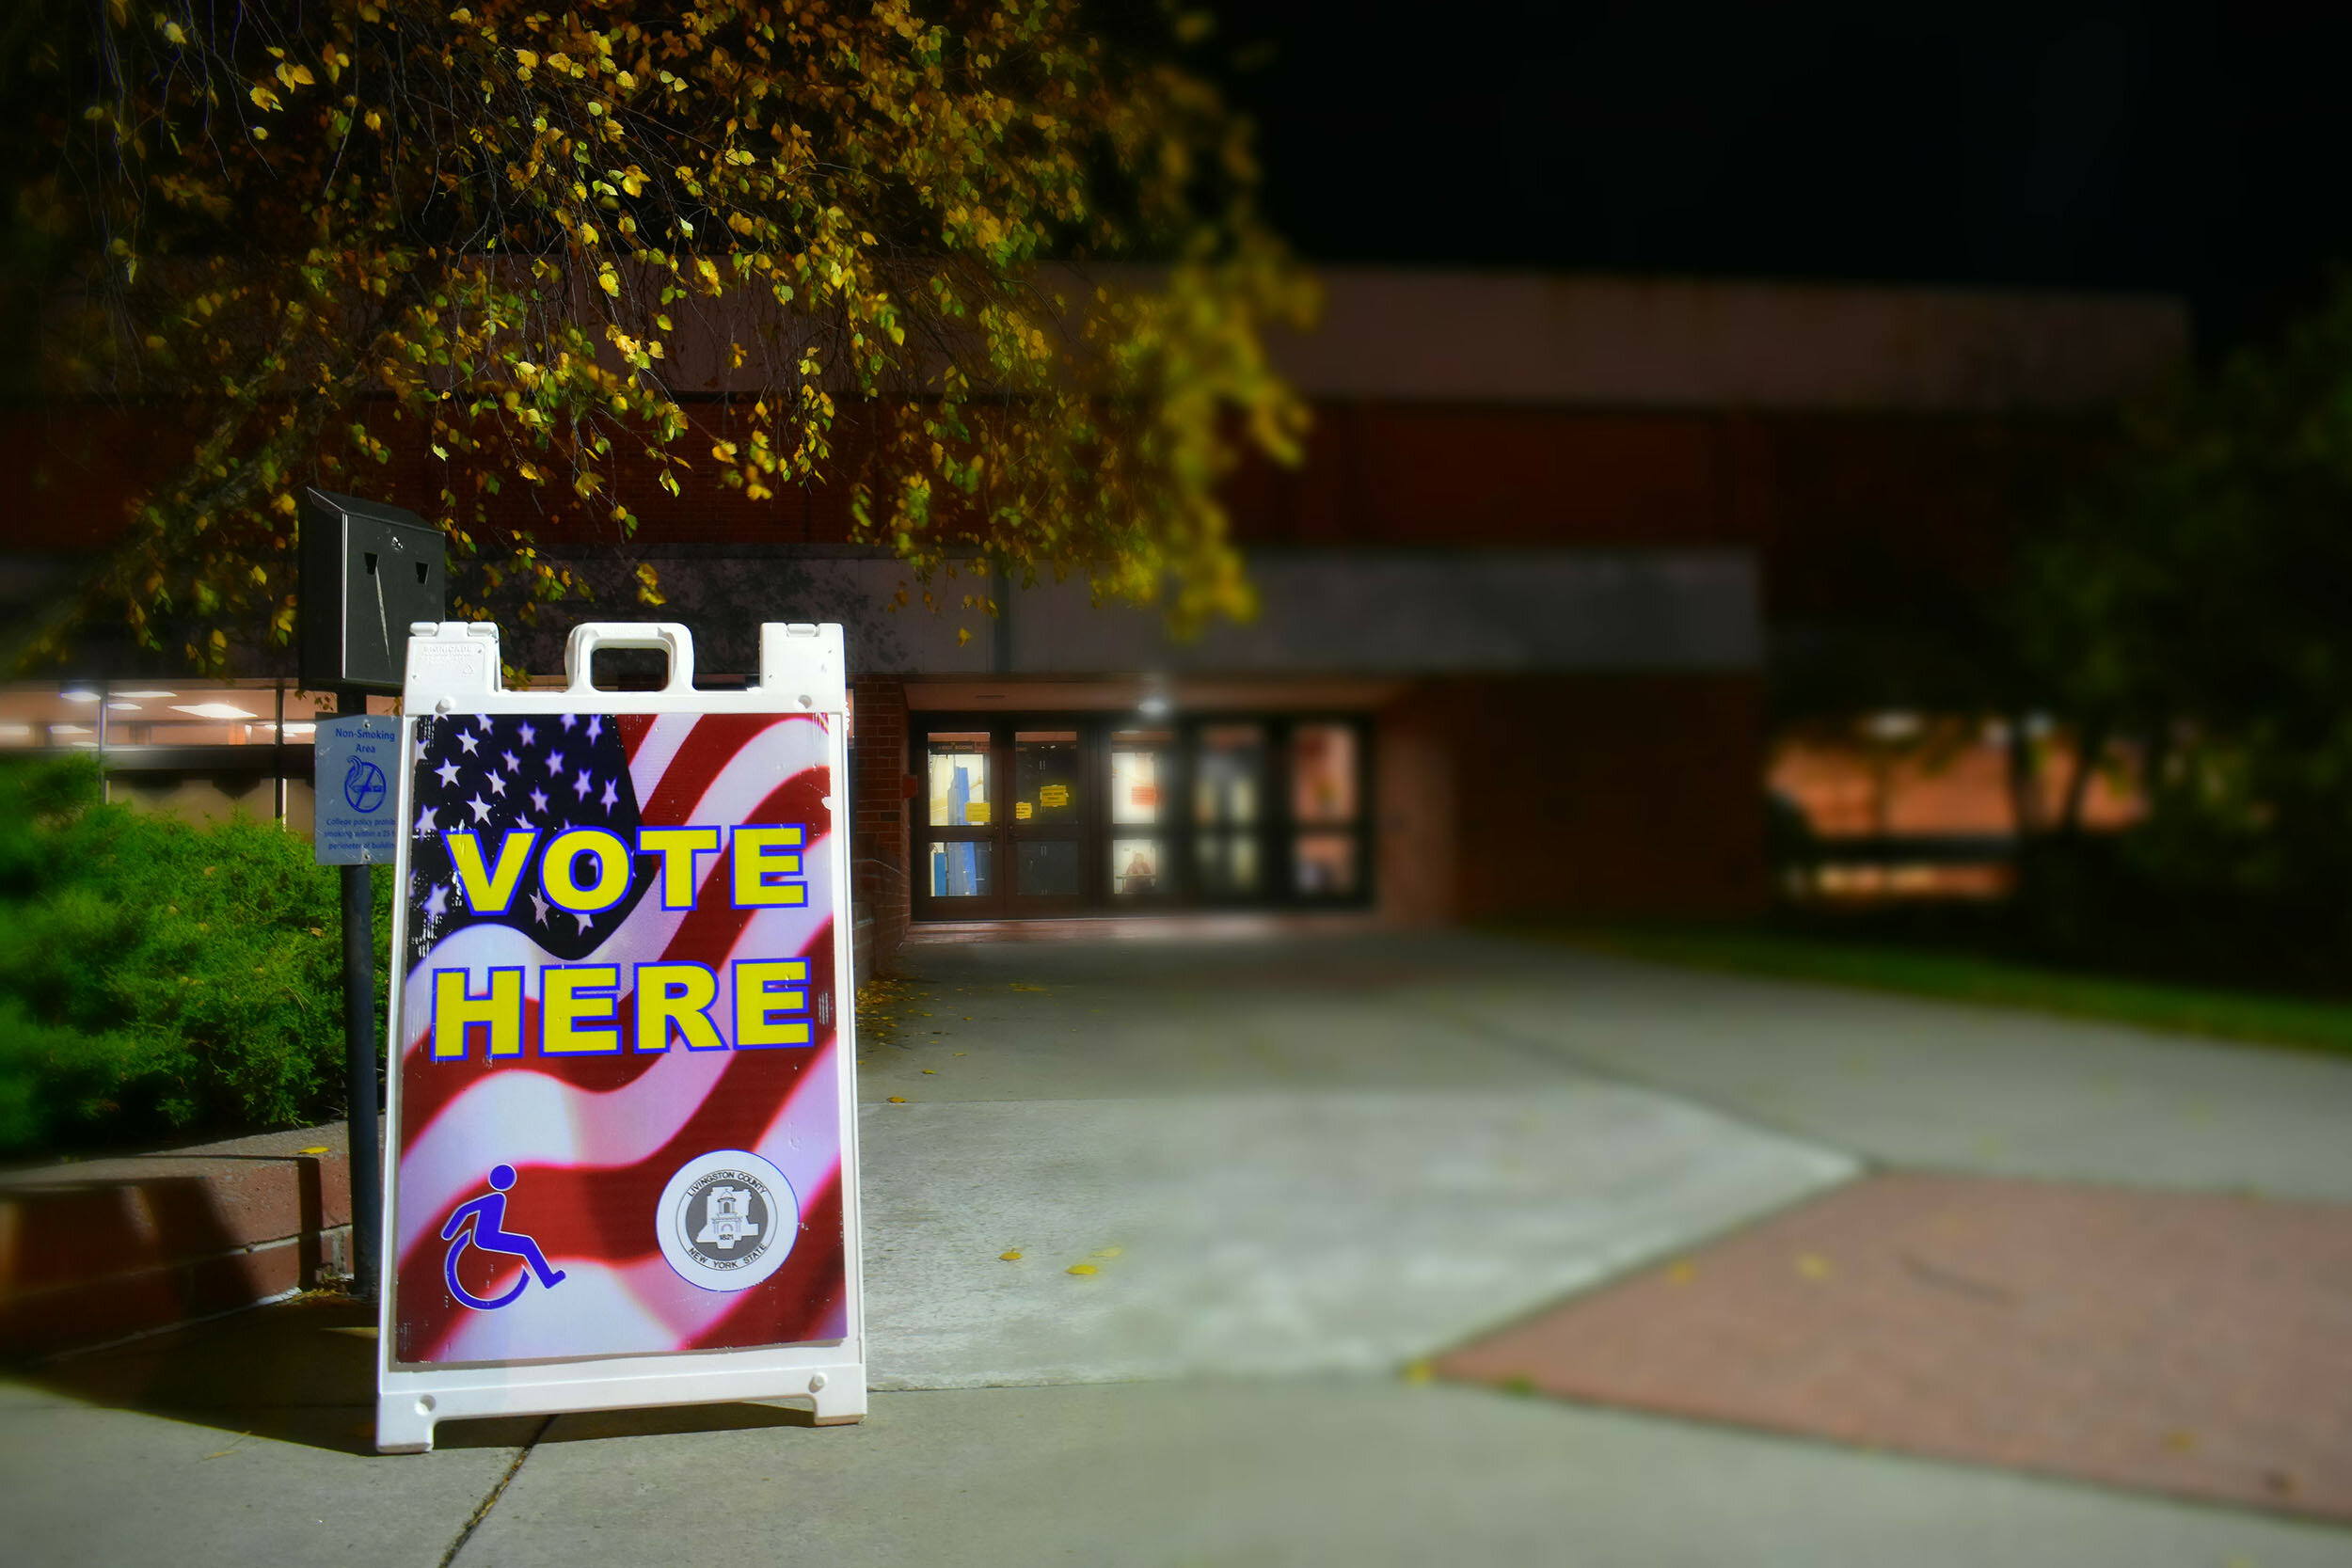 On-campus students went to vote in the Kulh Gymnasium of the Merritt Athletic Center on Nov. 5 (pictured above). This will also be the polling place for the spring 2020 primaries and special election (Xavier Delcid/Photo Editor).